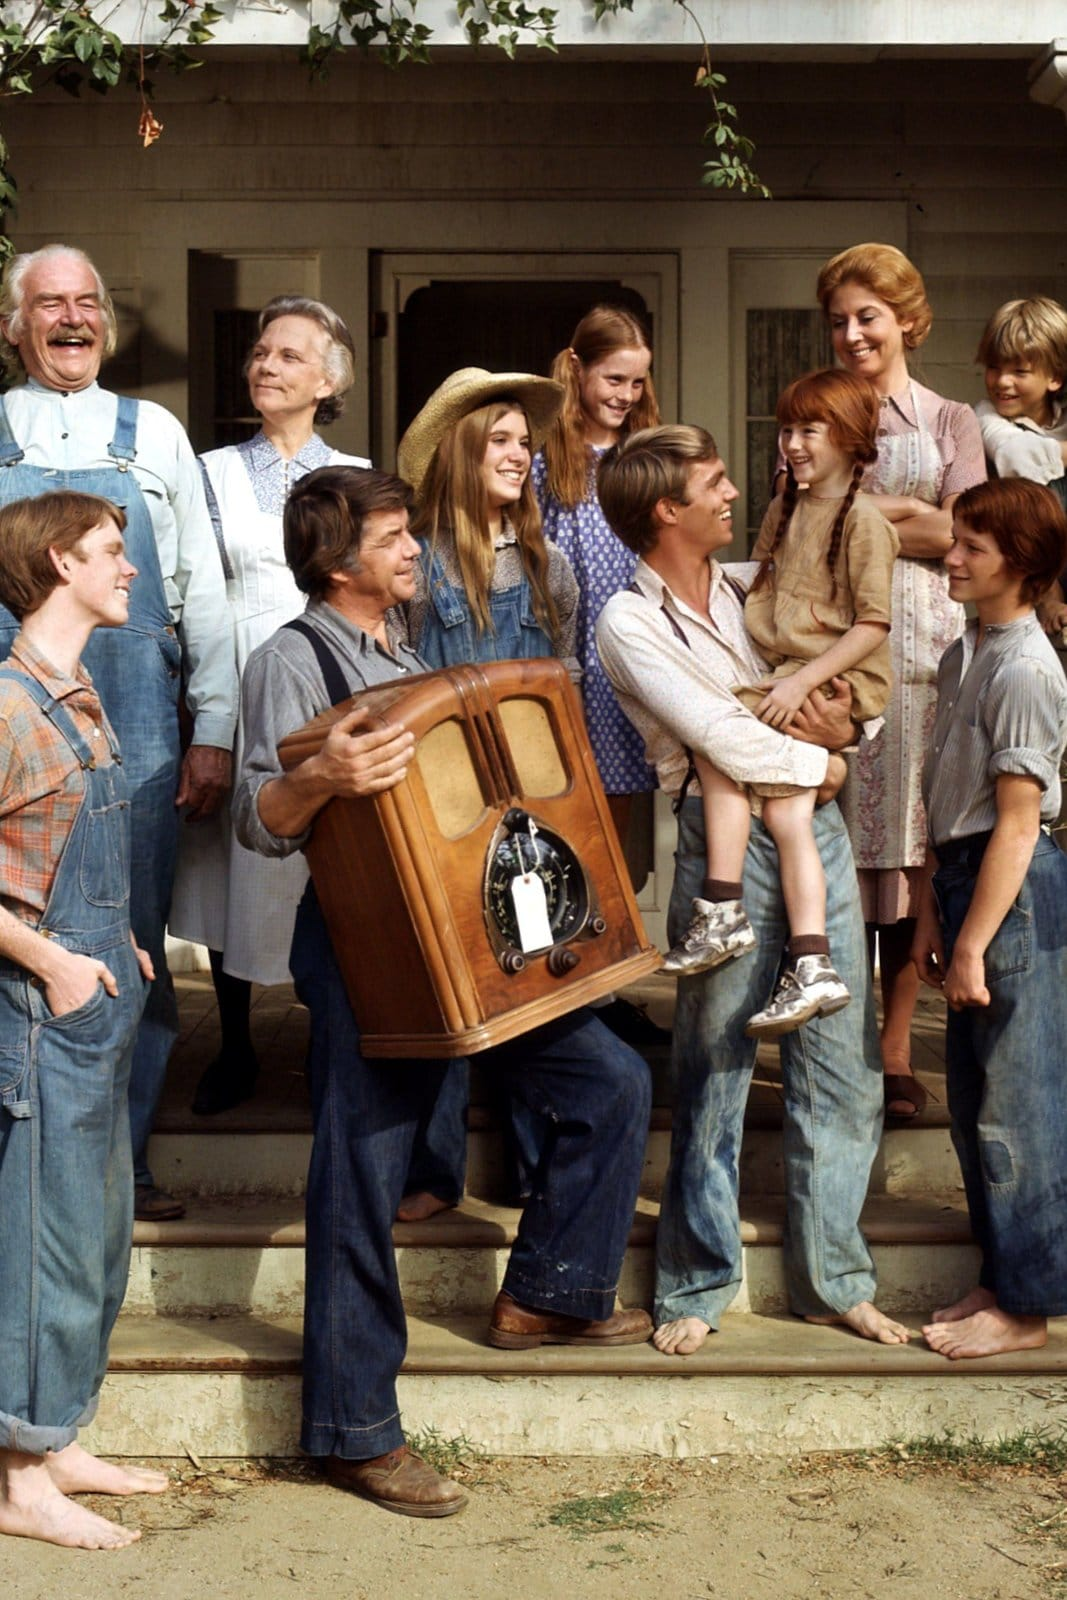 The WaltonsThe Waltons family on the front porch